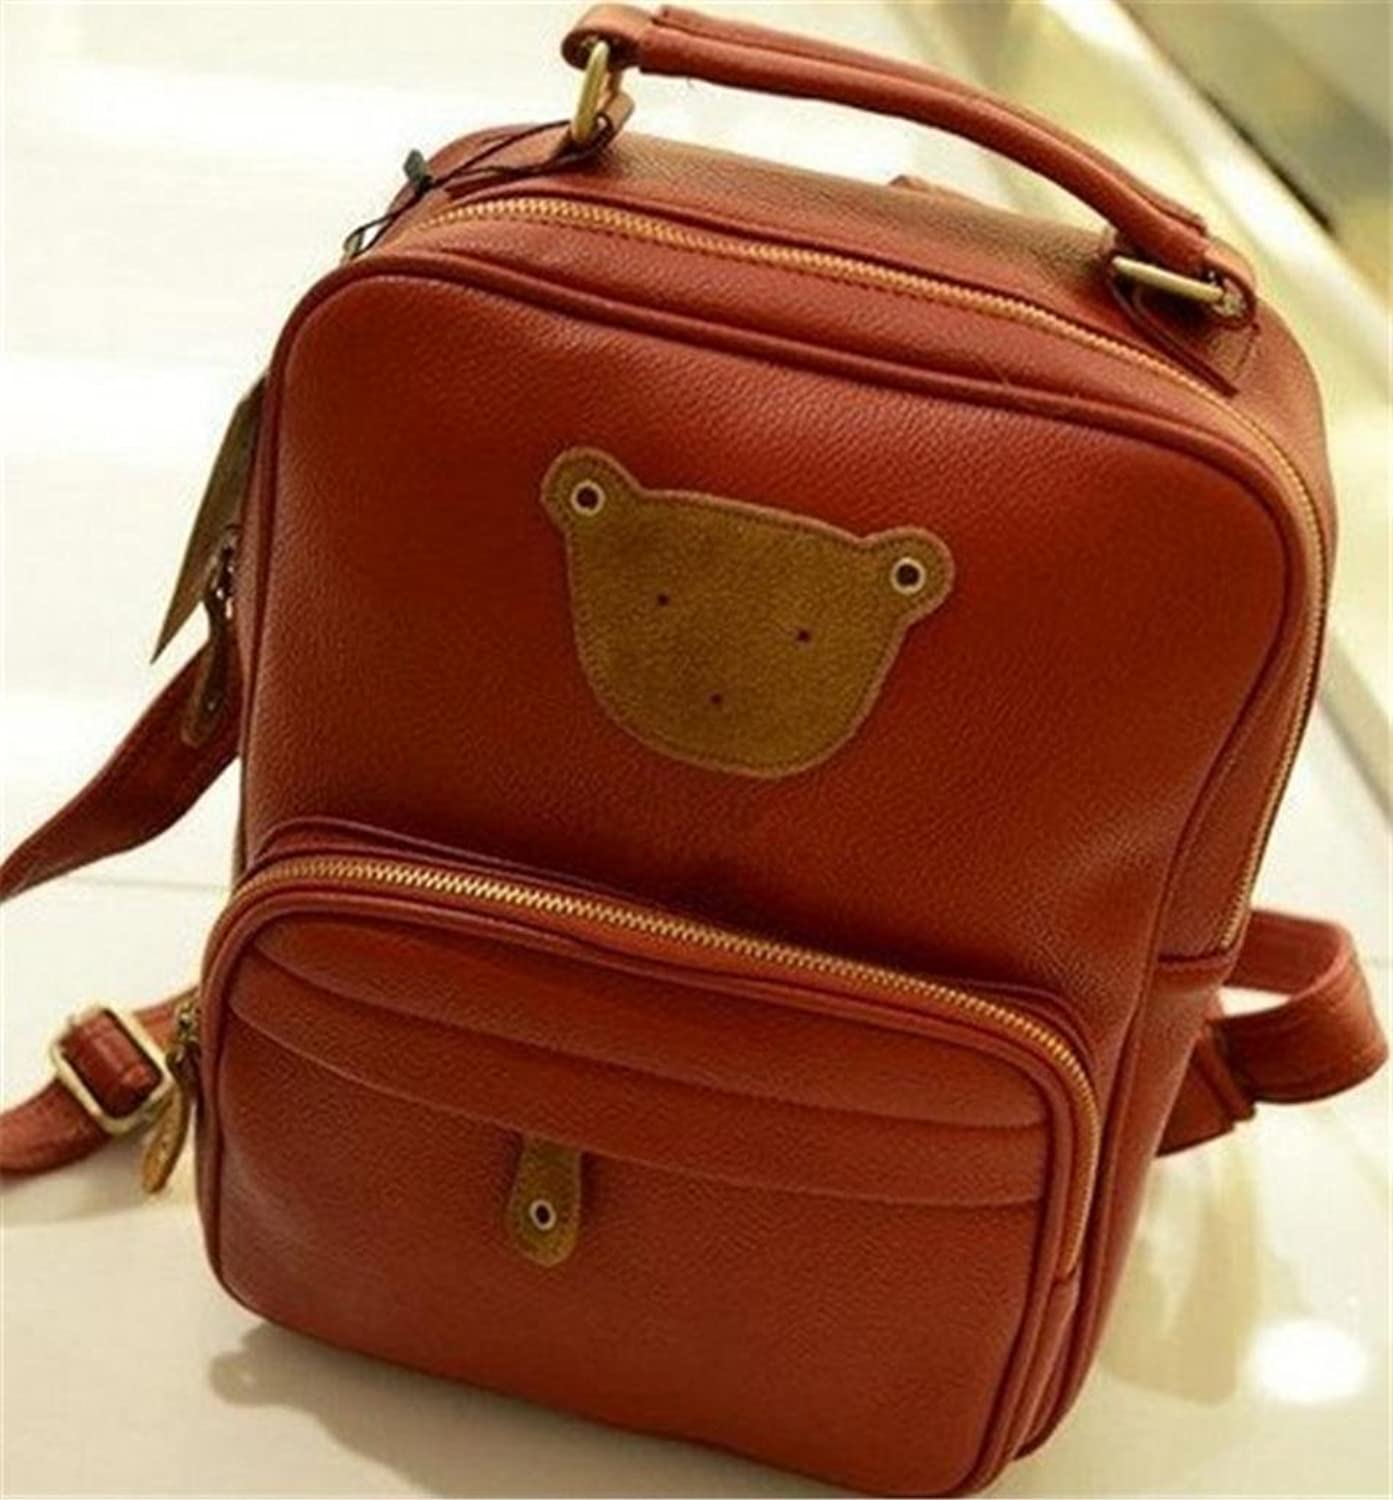 BG0268 Korean Style Zipper Bear Print PU Leather School Handbag, Travel Backpack (Red Color)